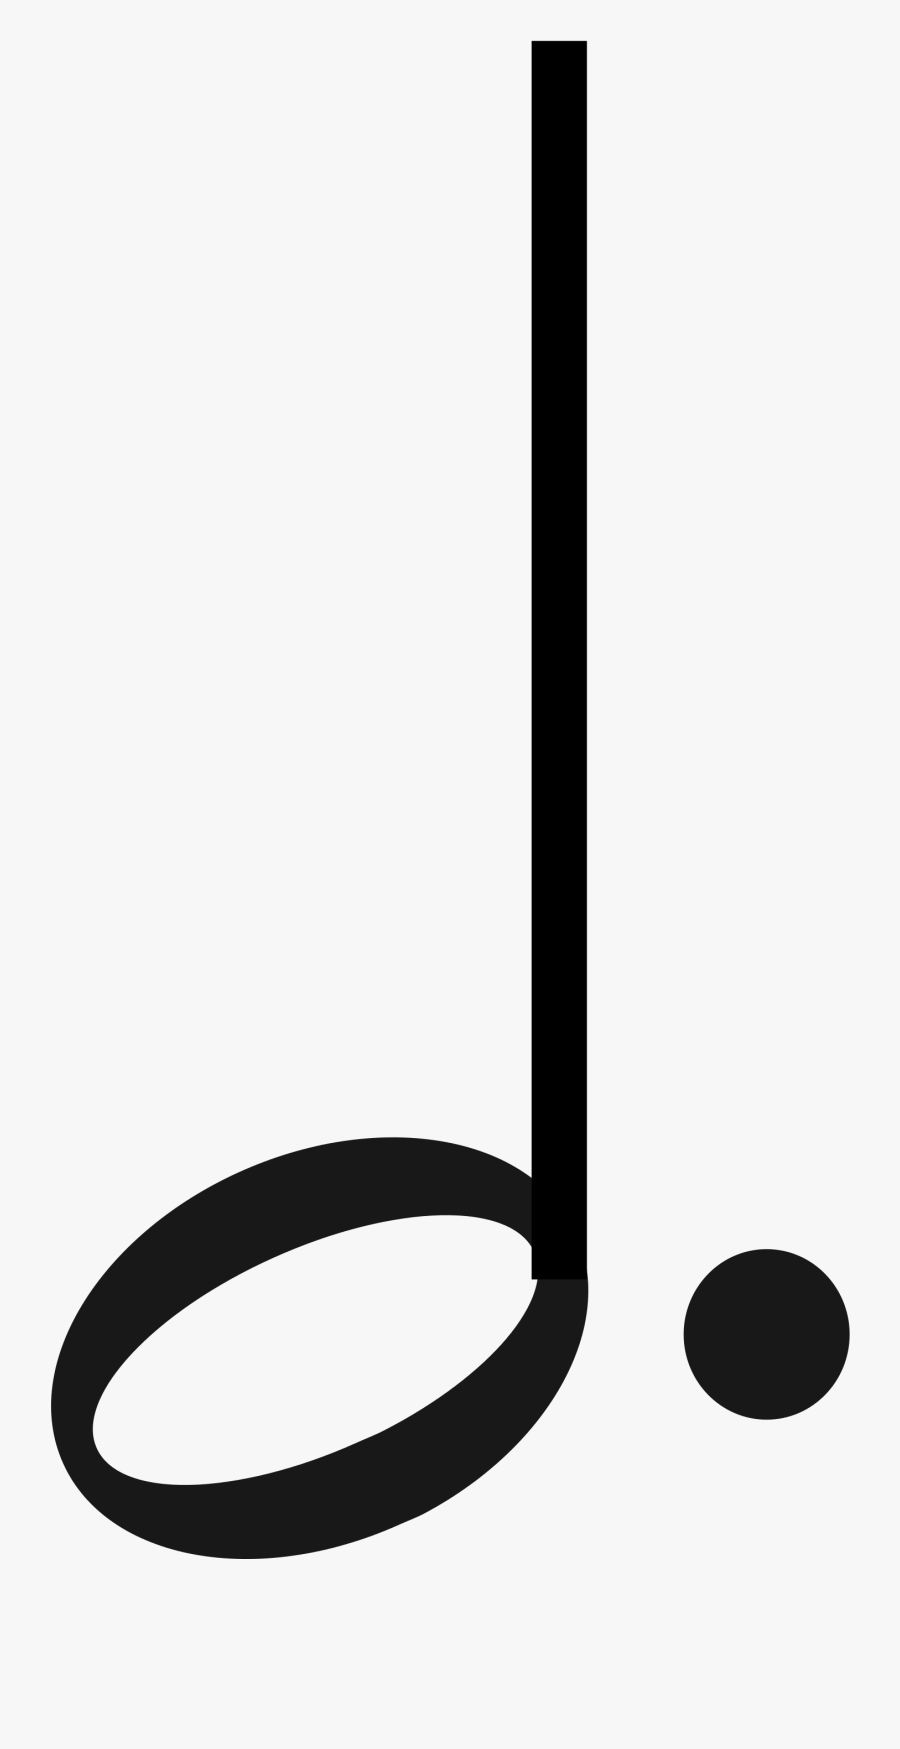 Music Dotted Half Note Clipart , Png Download - Music Dotted Half Note, Transparent Clipart